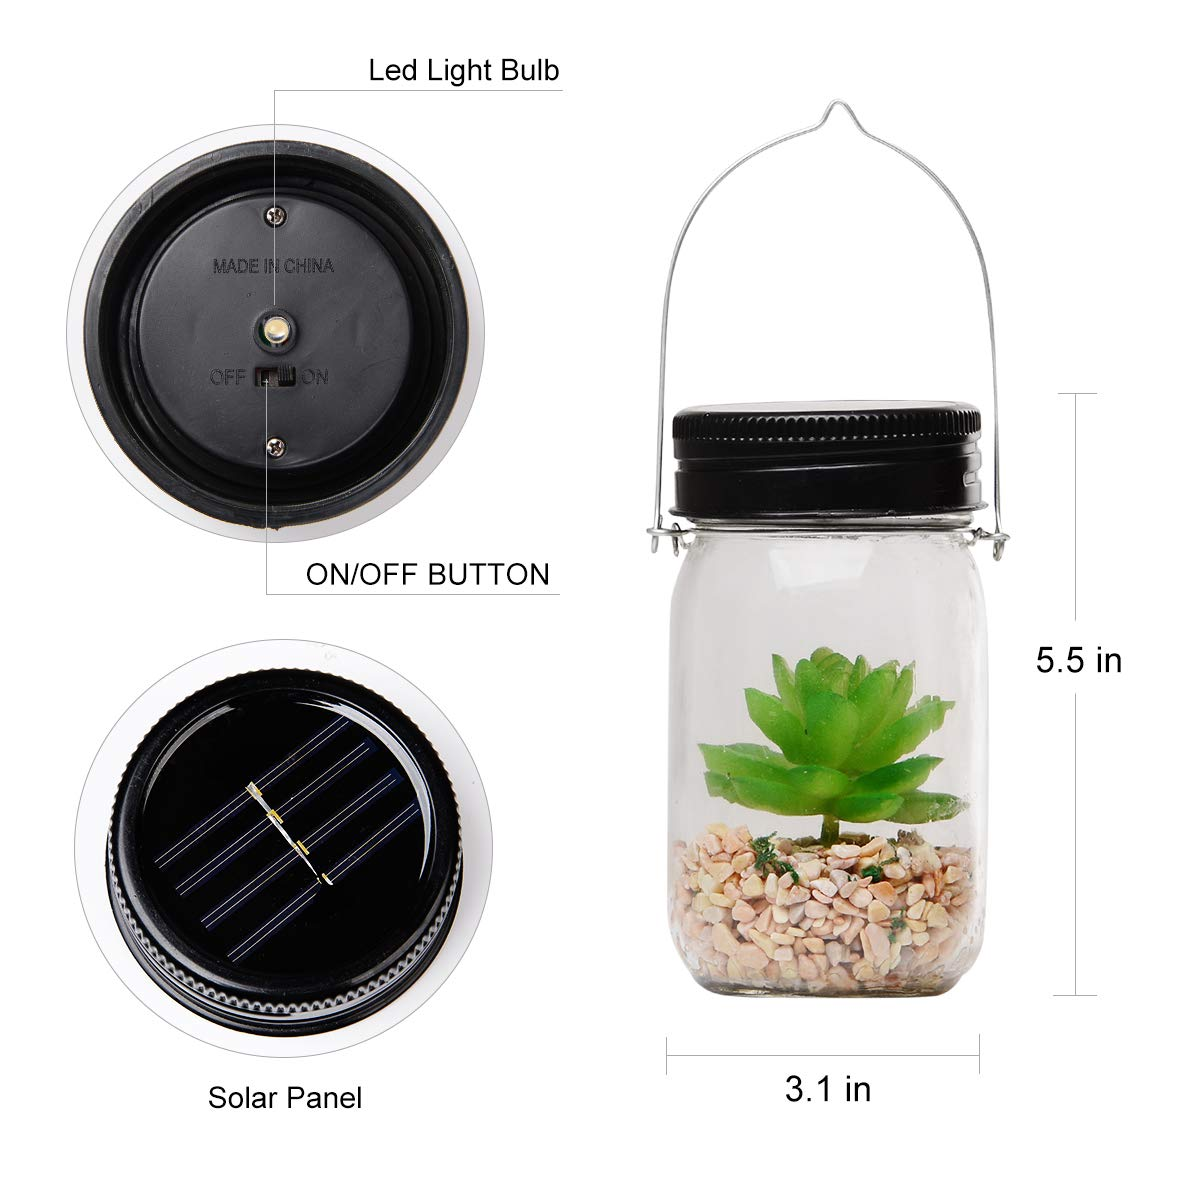 Solar Powered Lantern Mason Jar Solar Lights Artificial Succulent Hanging Glass Terrarium DIY Kit Glass Planter Solar LED For Outdoor Garden | Night Lamp For Bedroom Nursery Bathroom